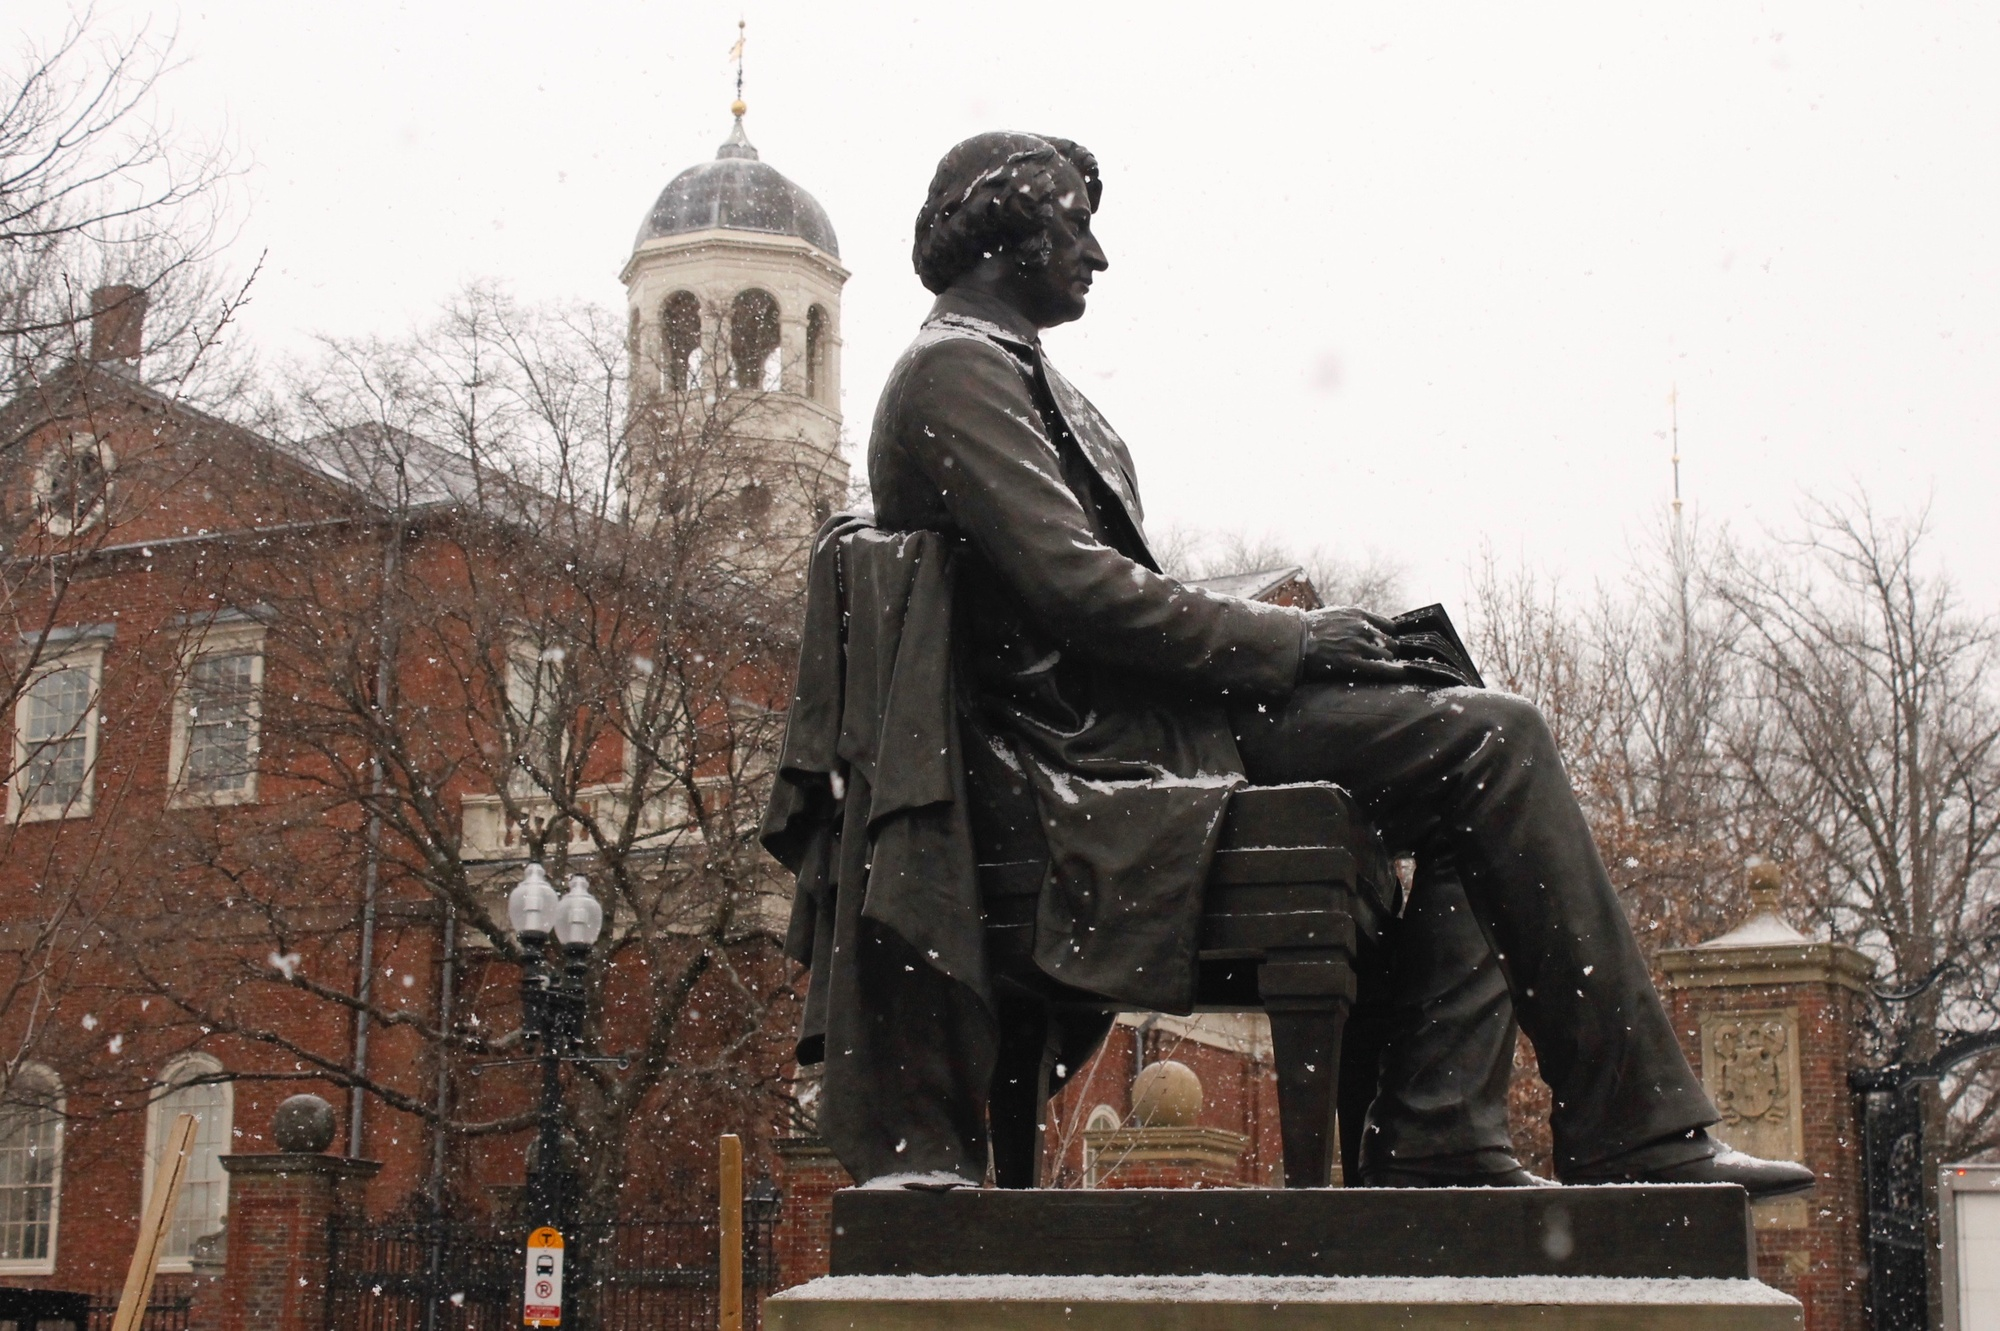 The Charles Sumner statue sits on an island right across the street from Johnston Gate, gazing over locals, students, and visitors alike.